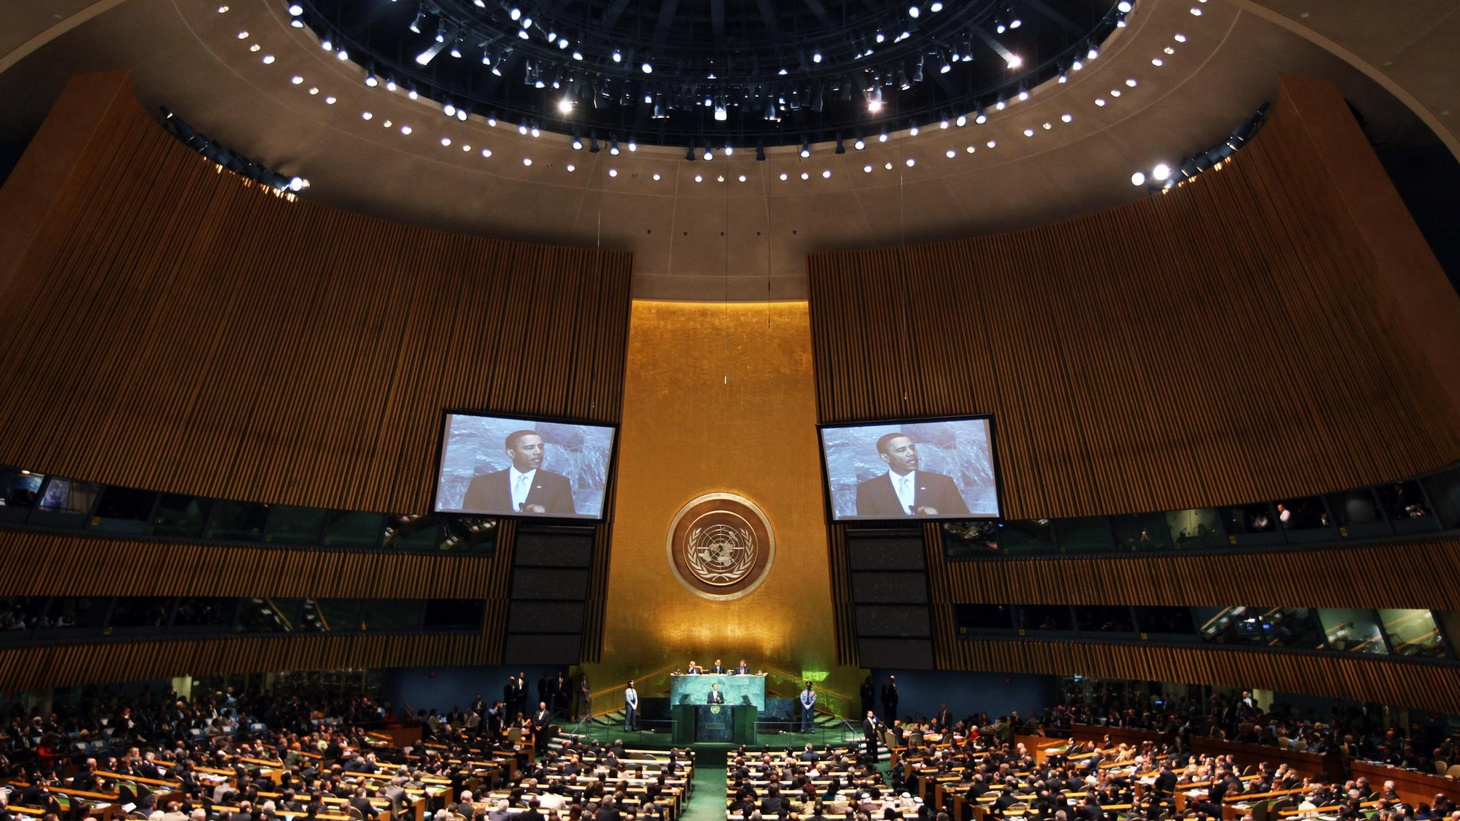 NPR News will provide anchored live coverage of President Obama's address to the UN General Assembly on Wednesday morning, September 23. The President is expected to begin speaking at 7am DST. Neal Conan hosts with NPR National Political Correspondent Mara Liasson and others in the studio.